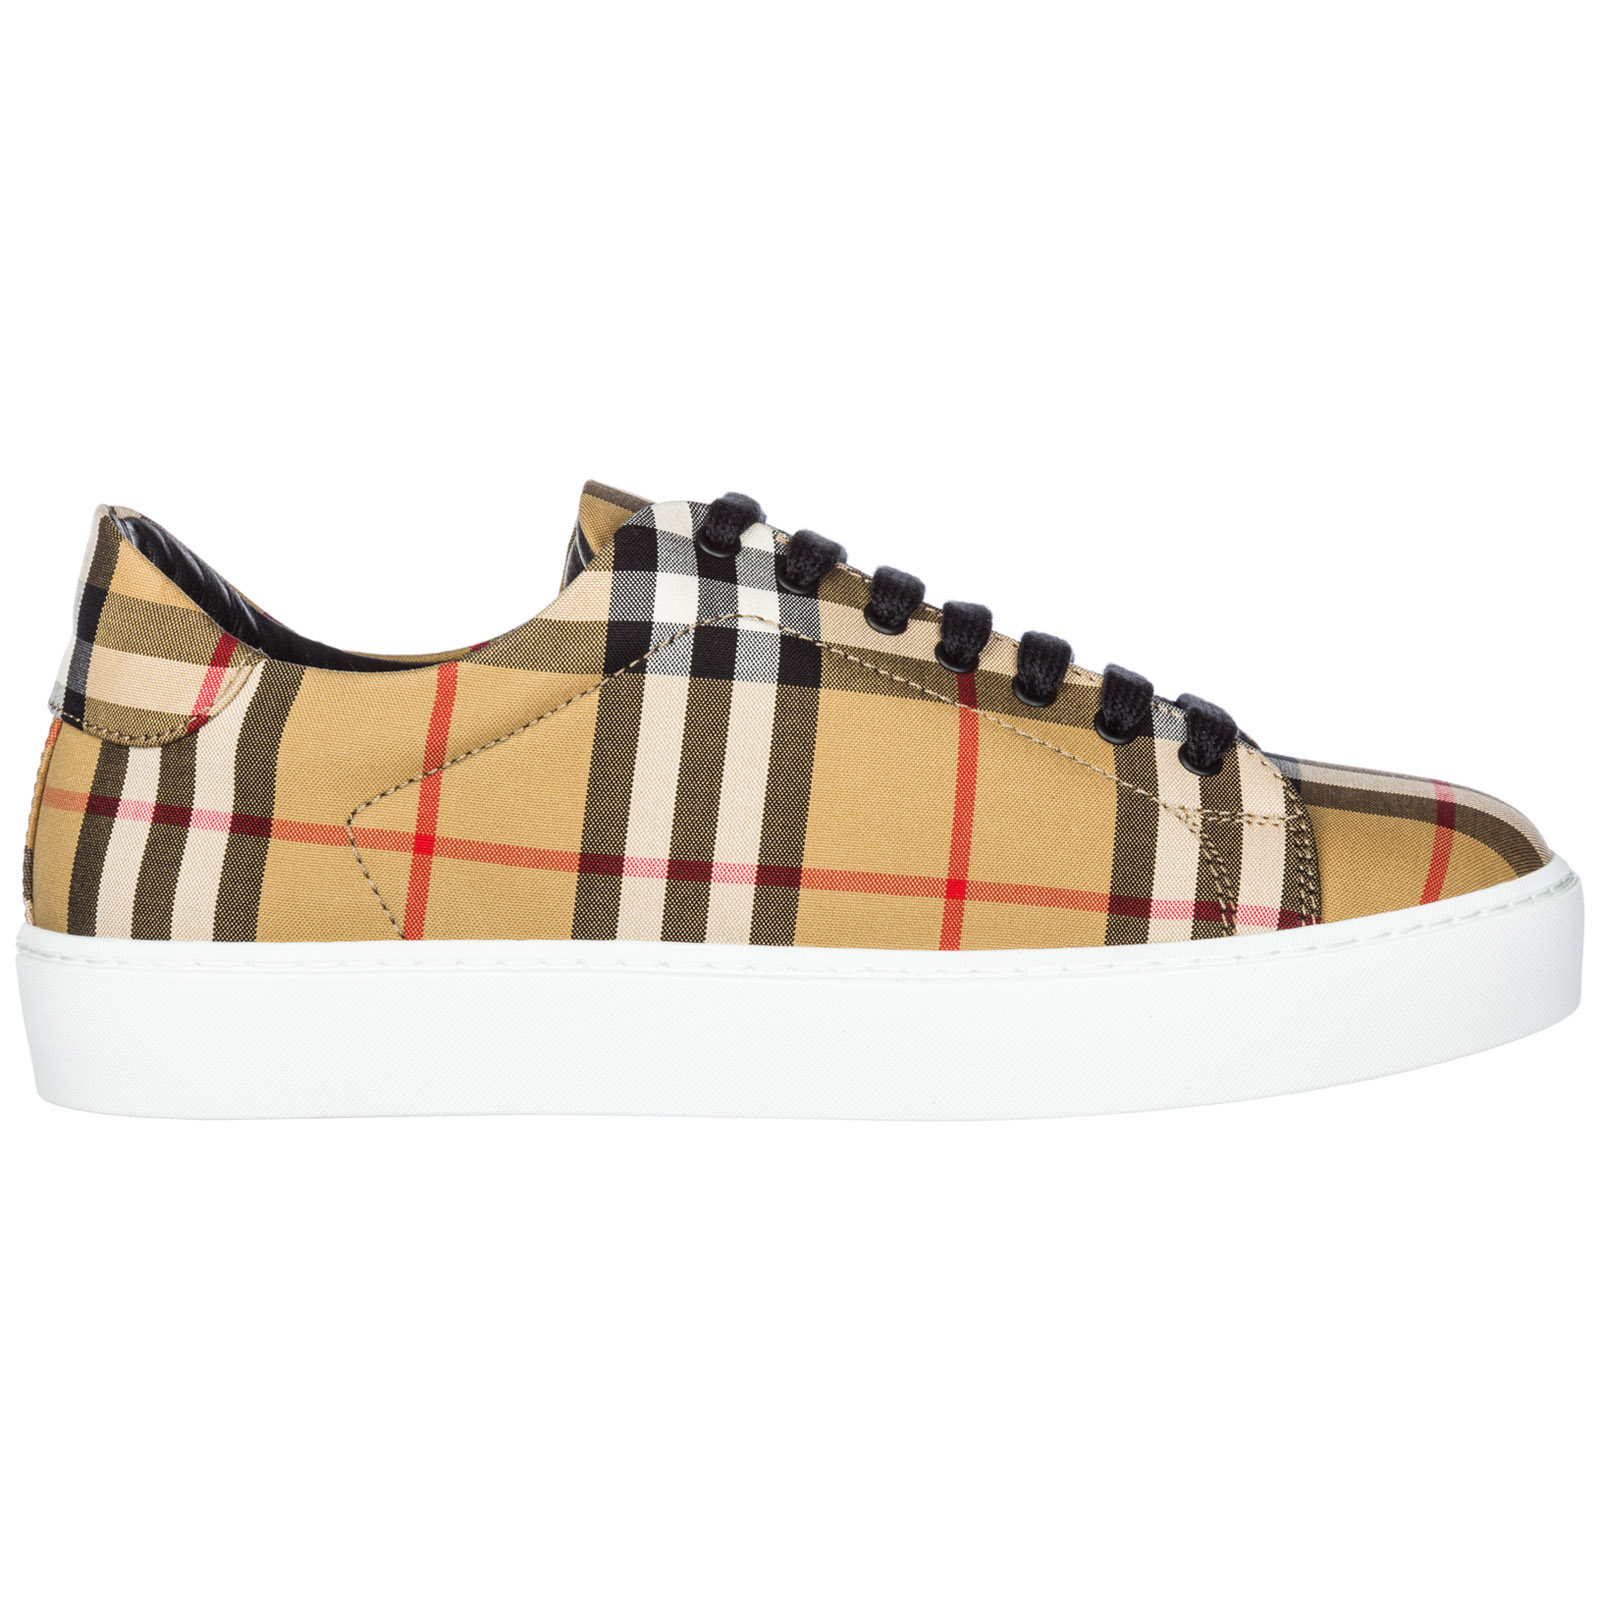 b58180f4600 Chaussures baskets sneakers femme westford ...